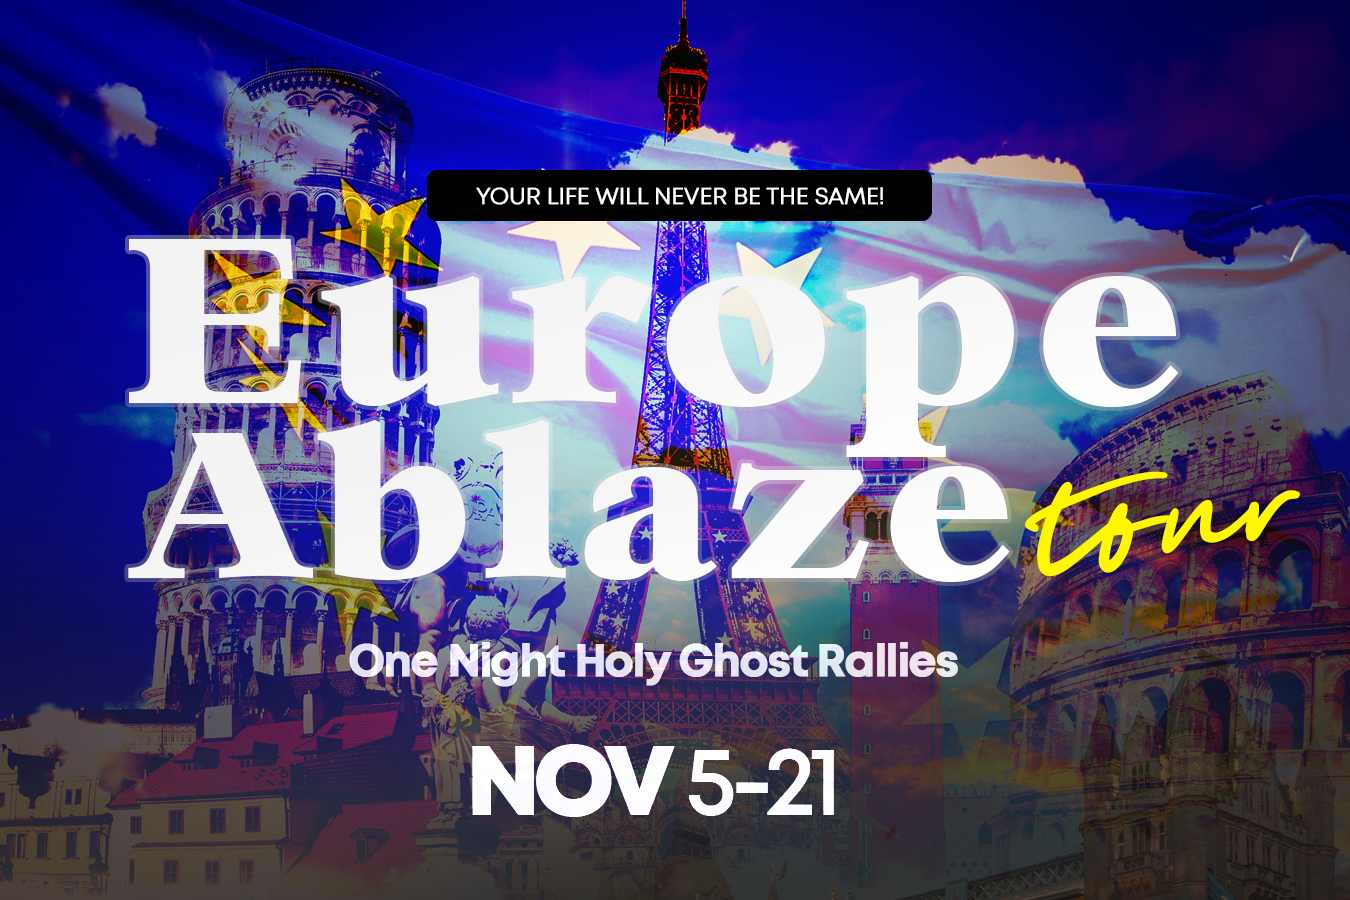 Europe Ablaze - One Night Holy Ghost Rallies